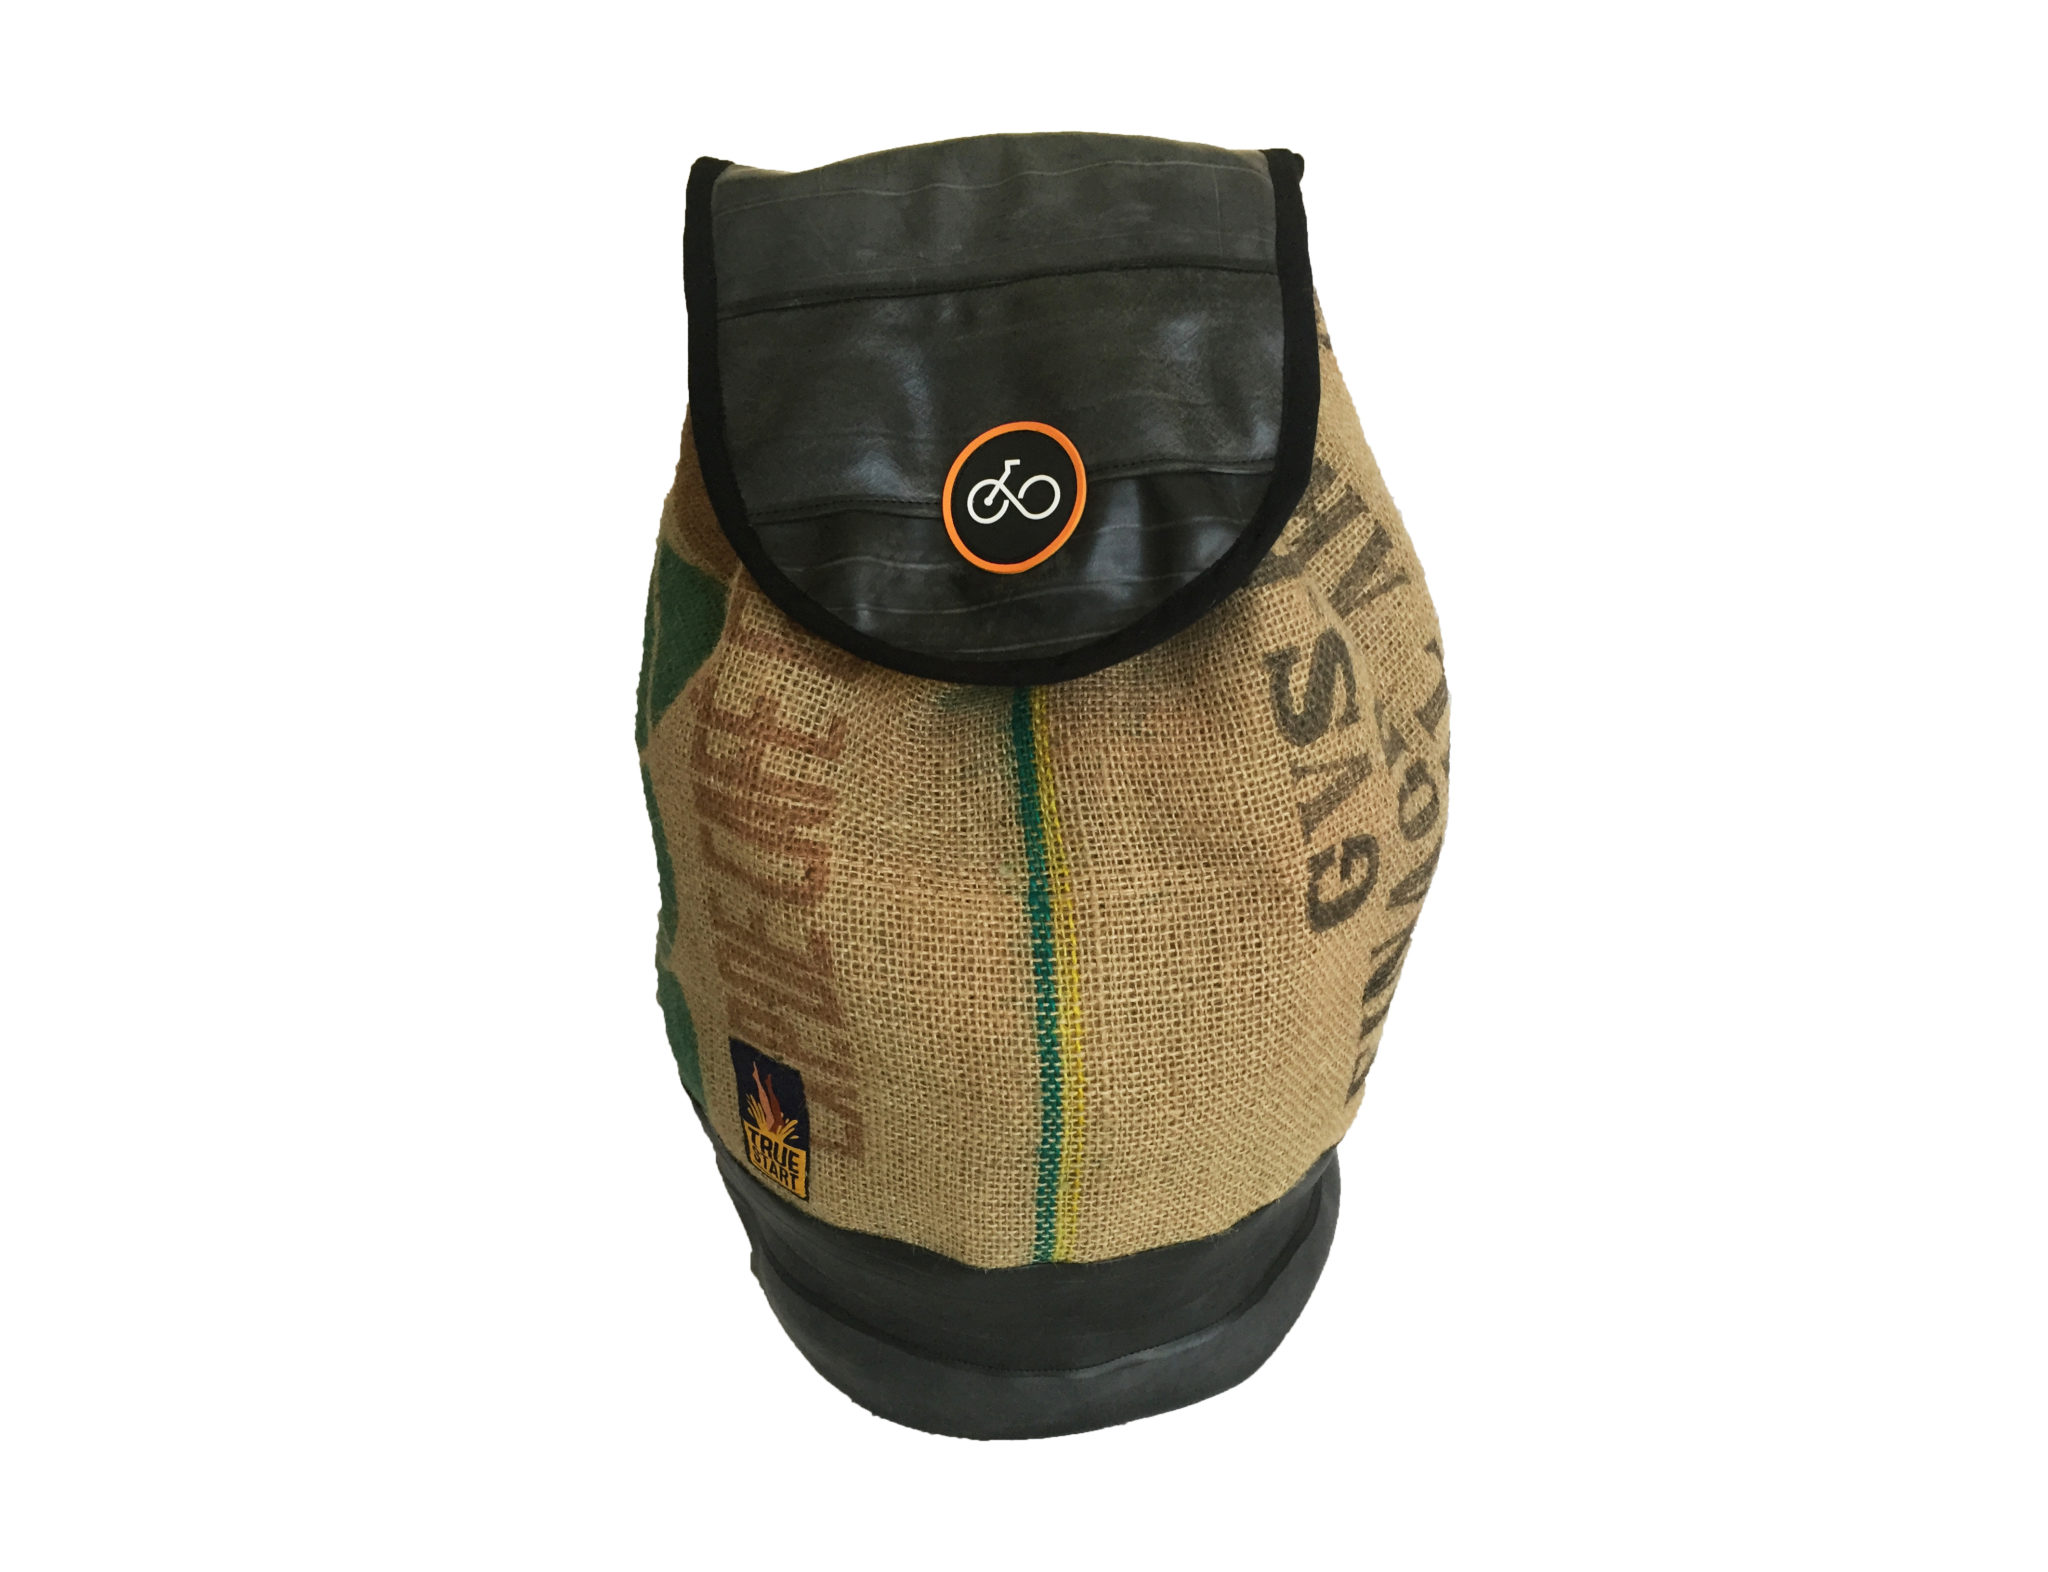 The beautiful and highly practical coffee bean/inner tube duffel bag gorgeous inside and out, and definitely well worth £39.60. If the bright colours and patterns appeal be sure to check out the other products on the Cycle of Good website!